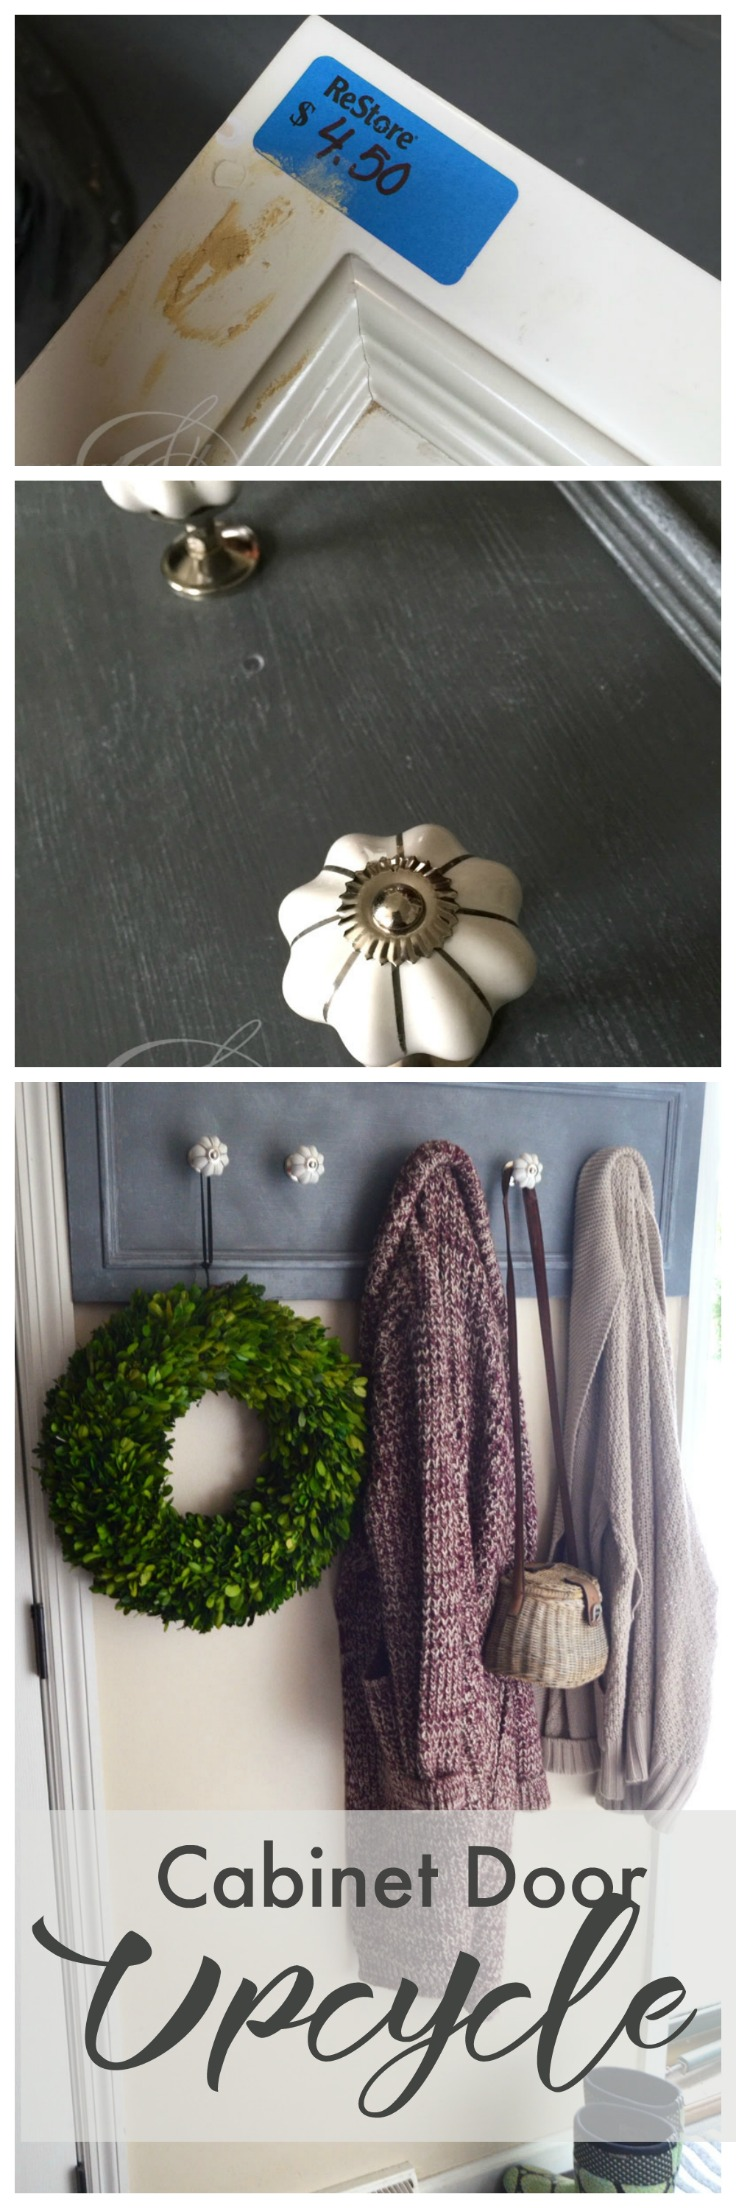 Make a pretty coat rack with an old cupboard door. See this tutorial on how to refinish an old cupboard door with paint and liming wax., then add pretty knobs